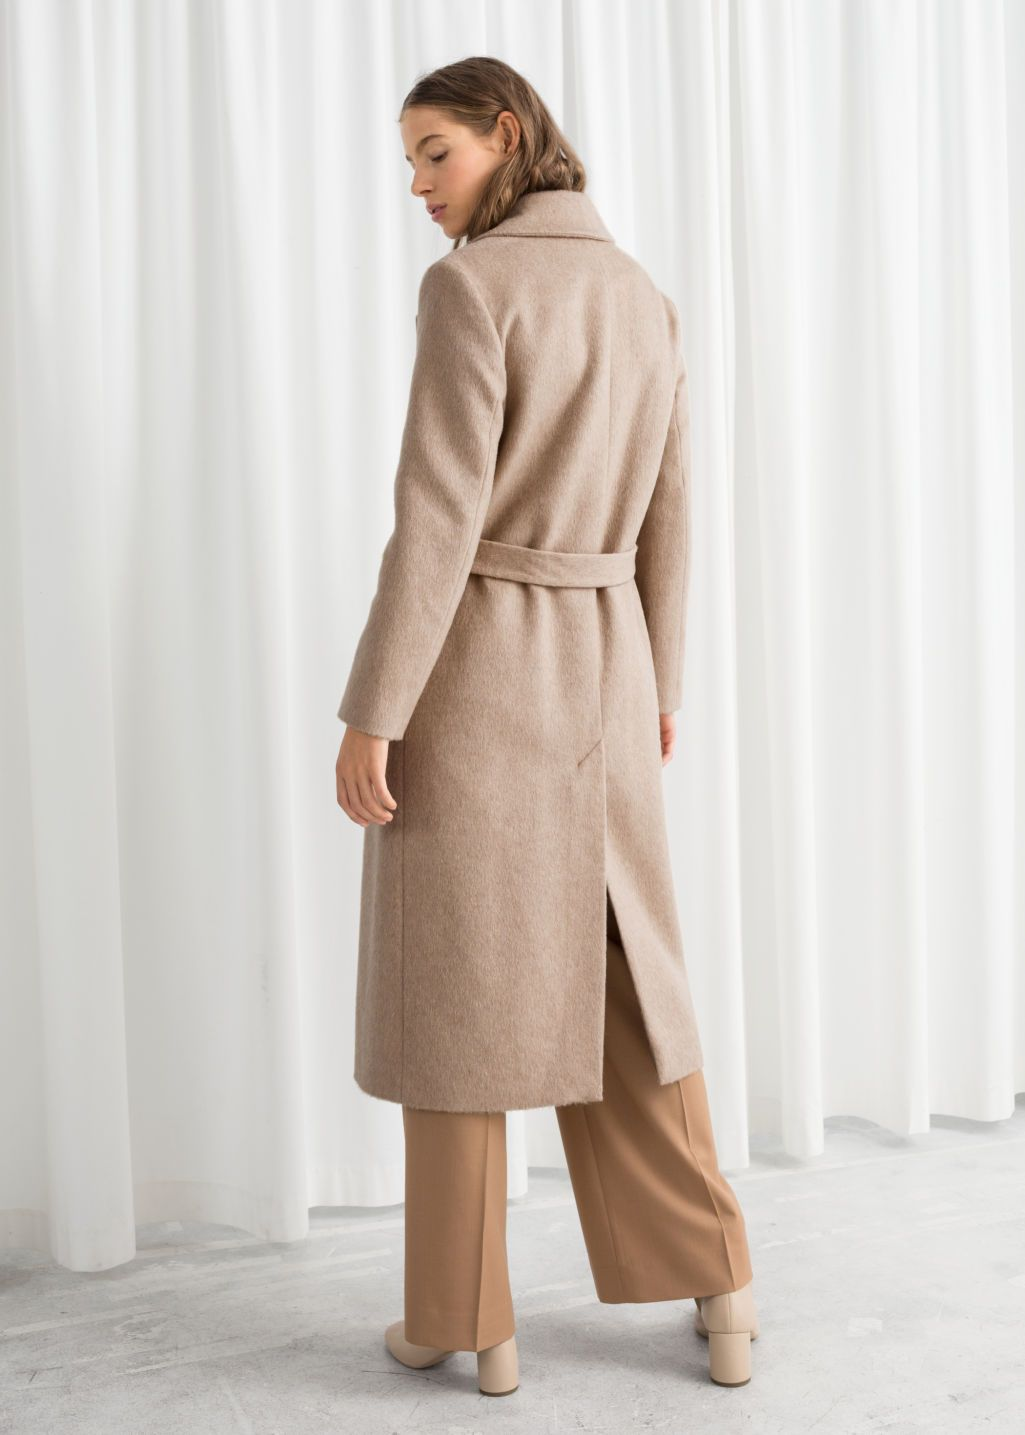 Pin By Lex Mcaffrey On Fashion Casual Fall Outfits Coat Jacket Outfits [ 1435 x 1025 Pixel ]